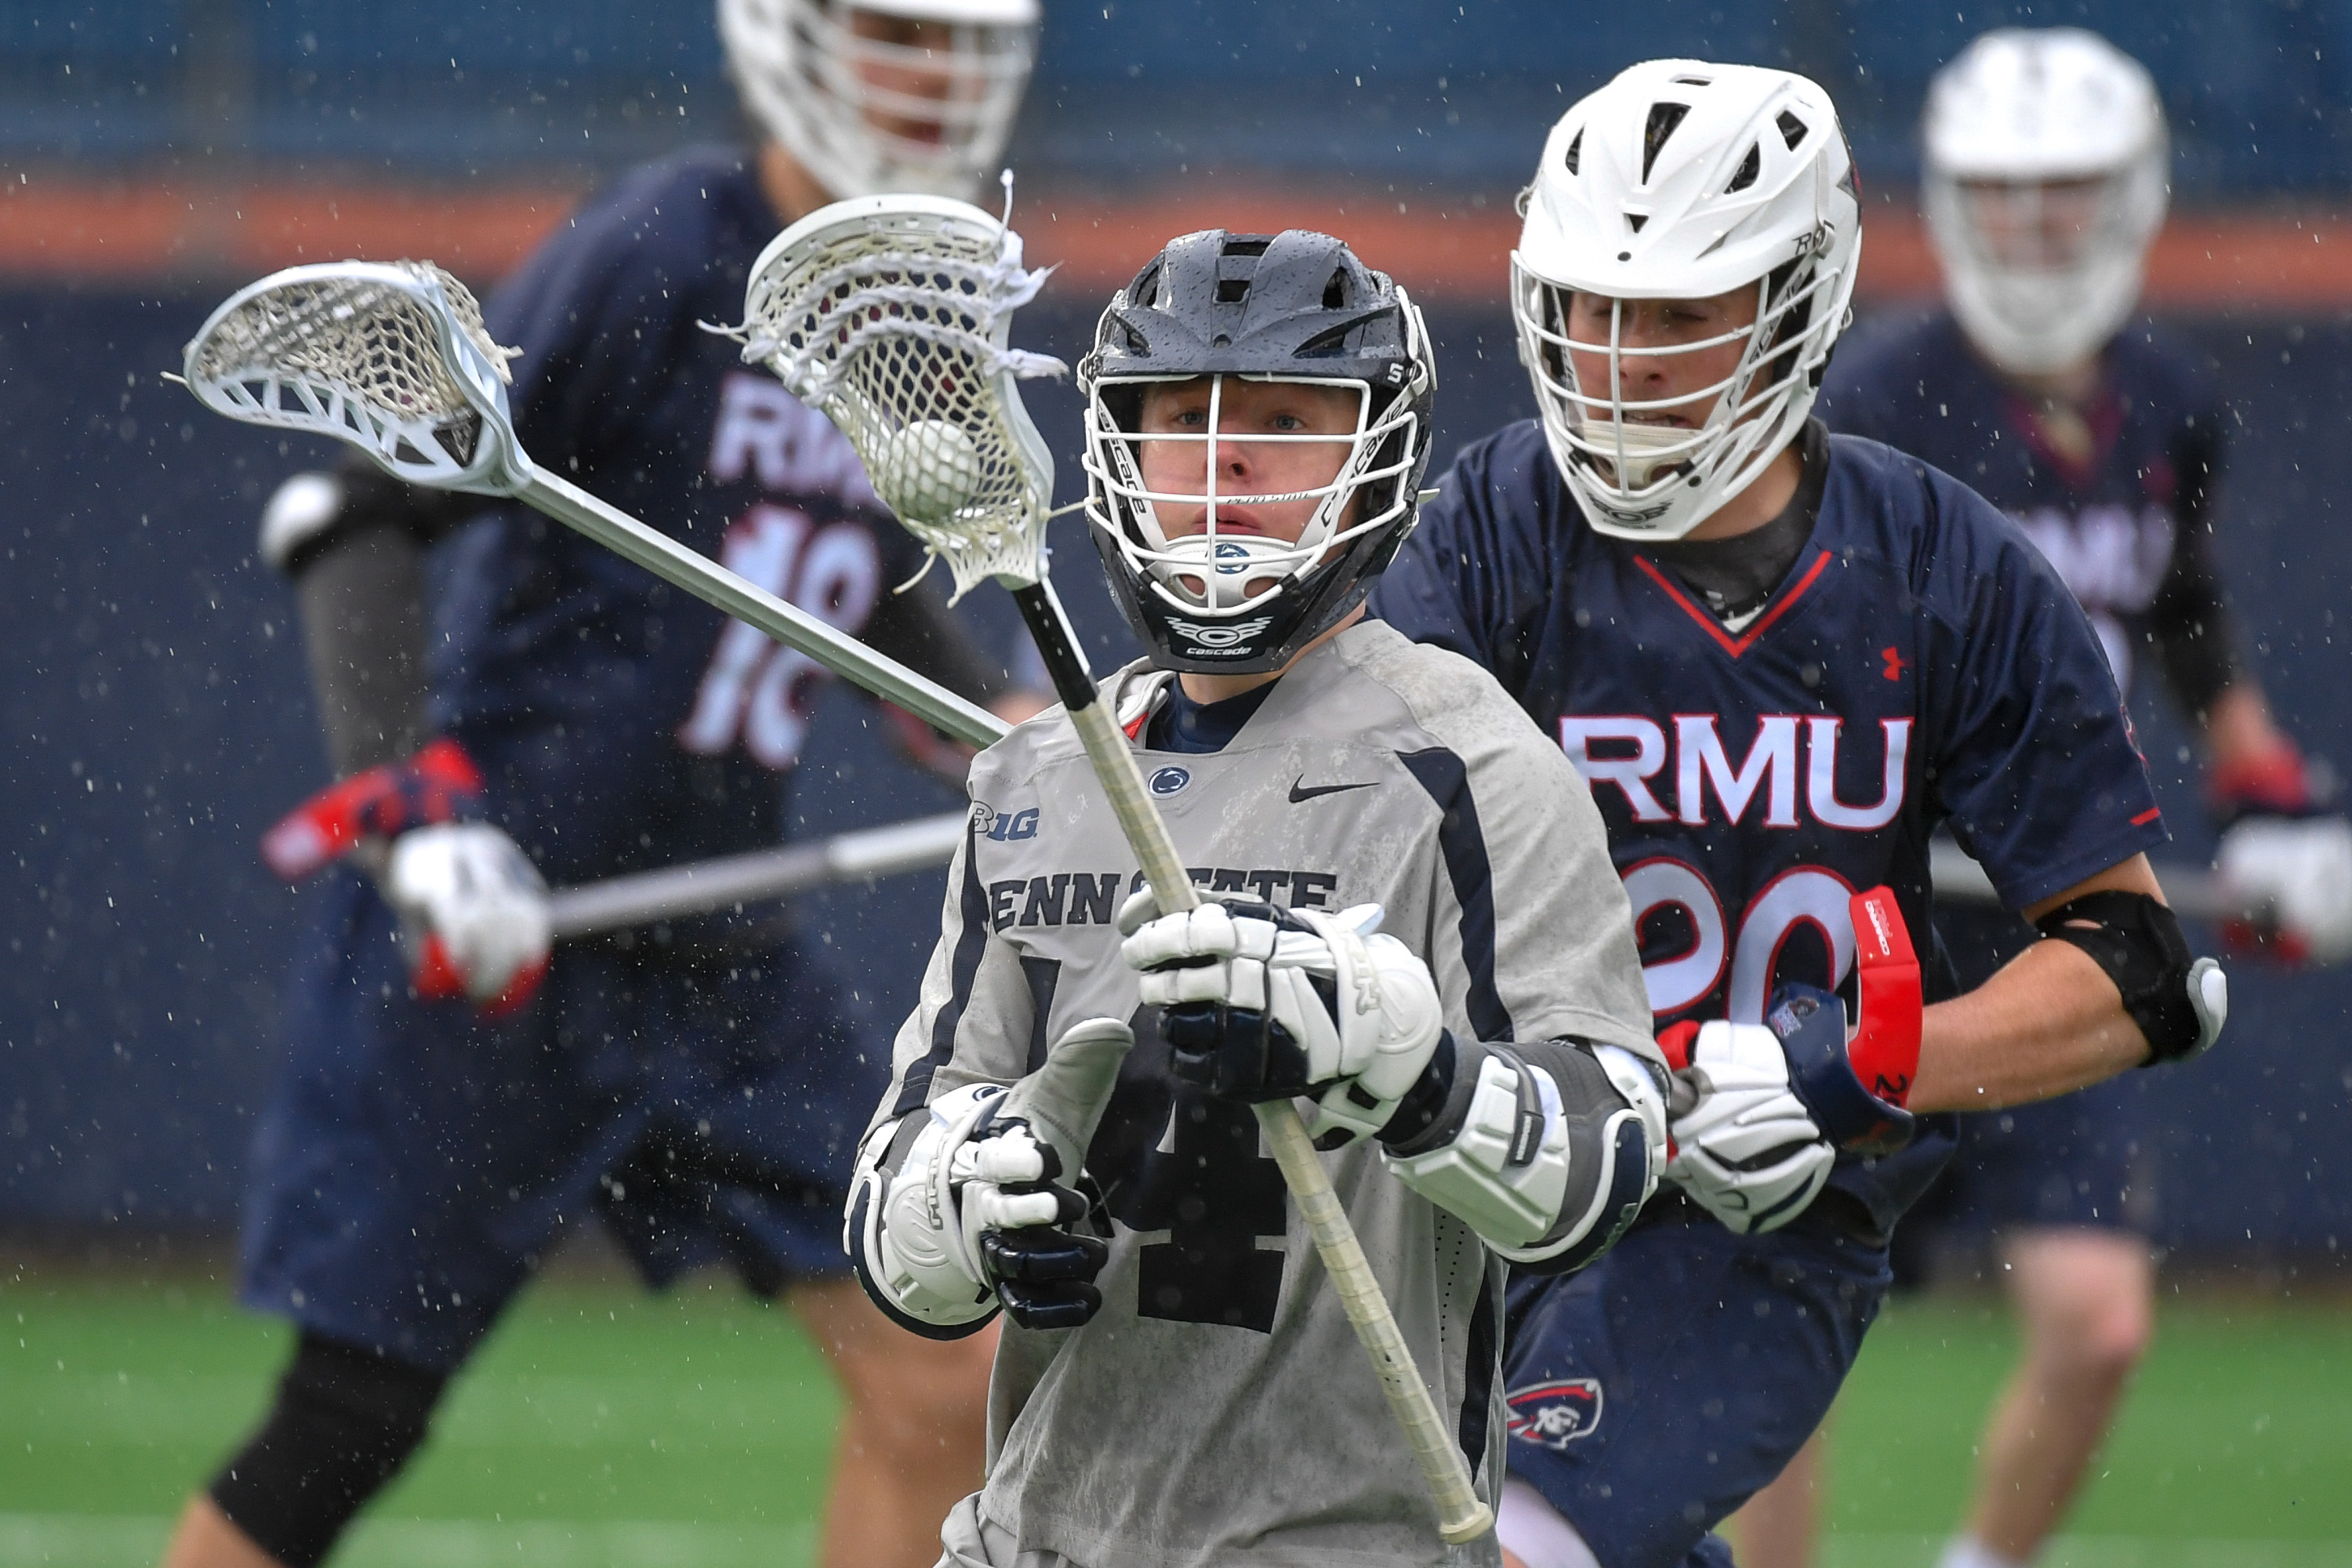 MLAX Set for Midweek Game with Furman - Penn State University